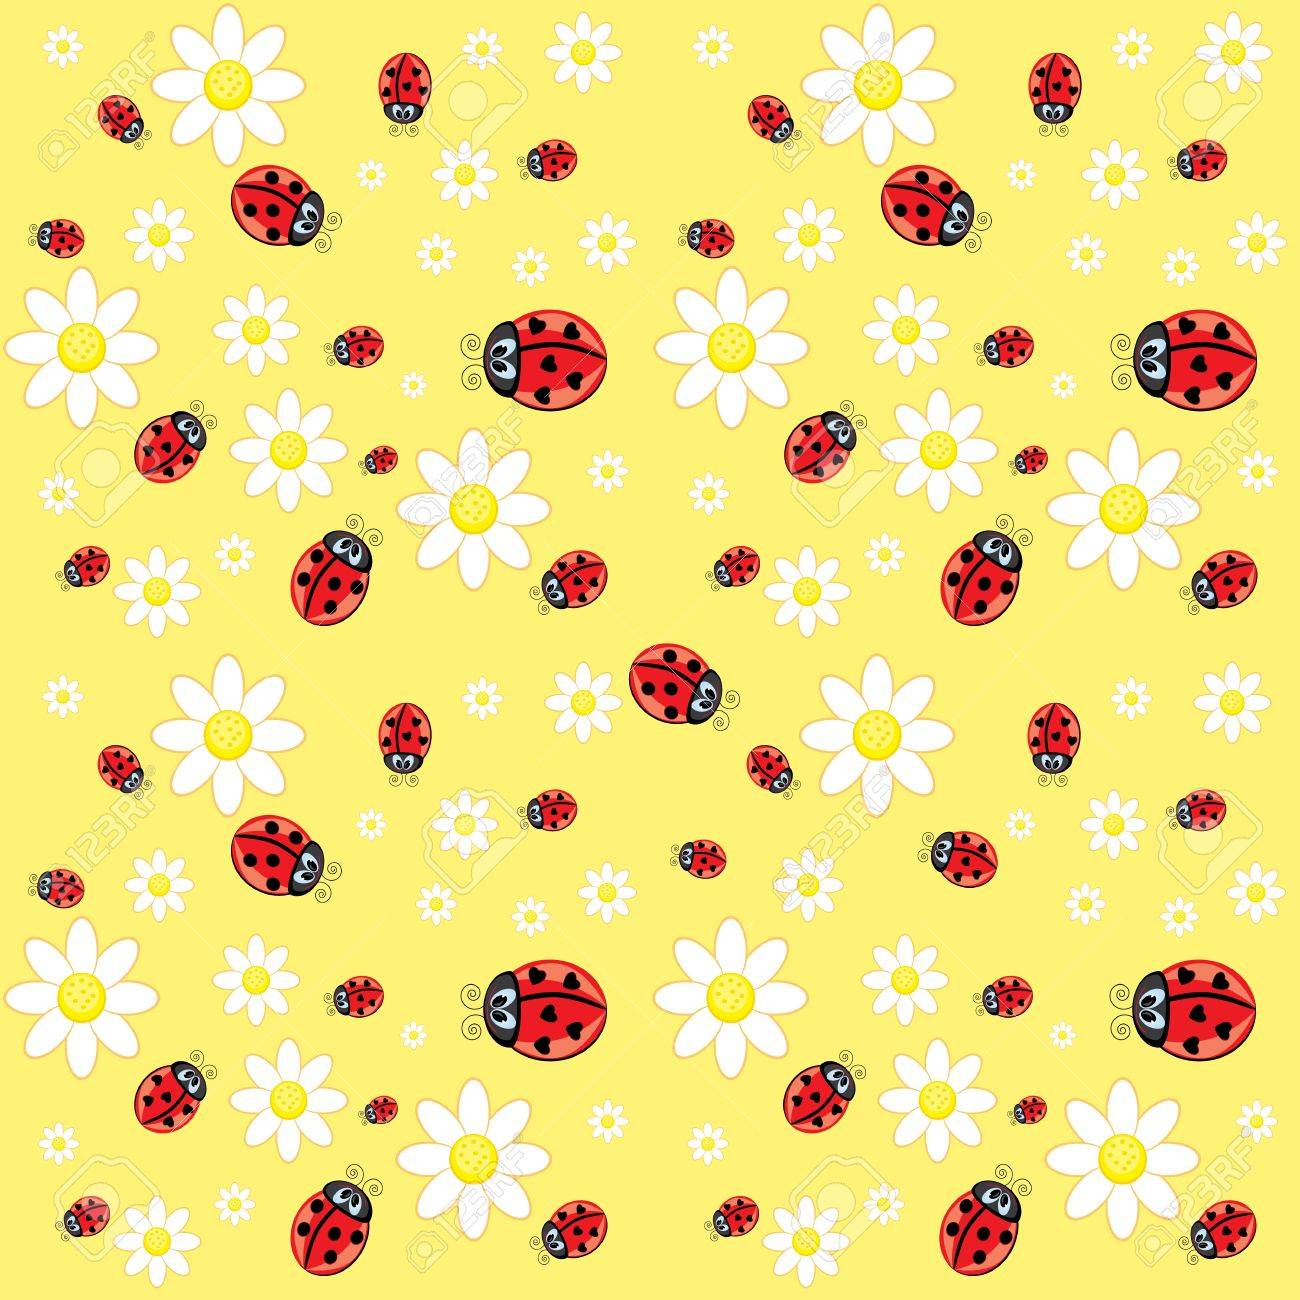 Seamless ladybug pattern. Illustration of a designer on a yellow background Stock Vector - 10273340